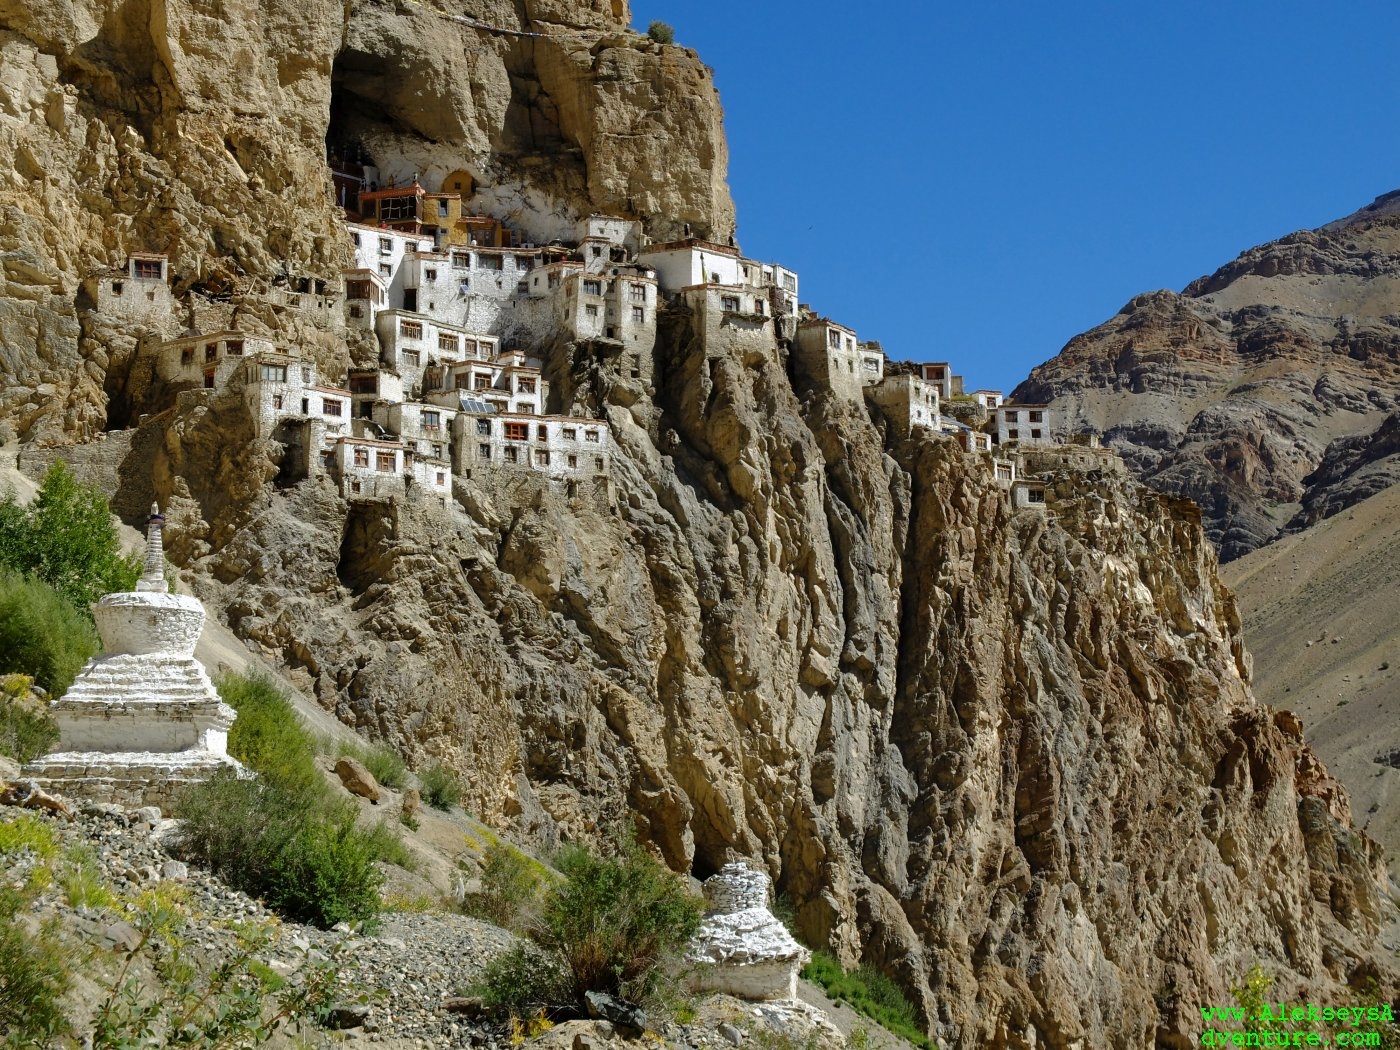 Located on the cliffside is the phugtal monastery.